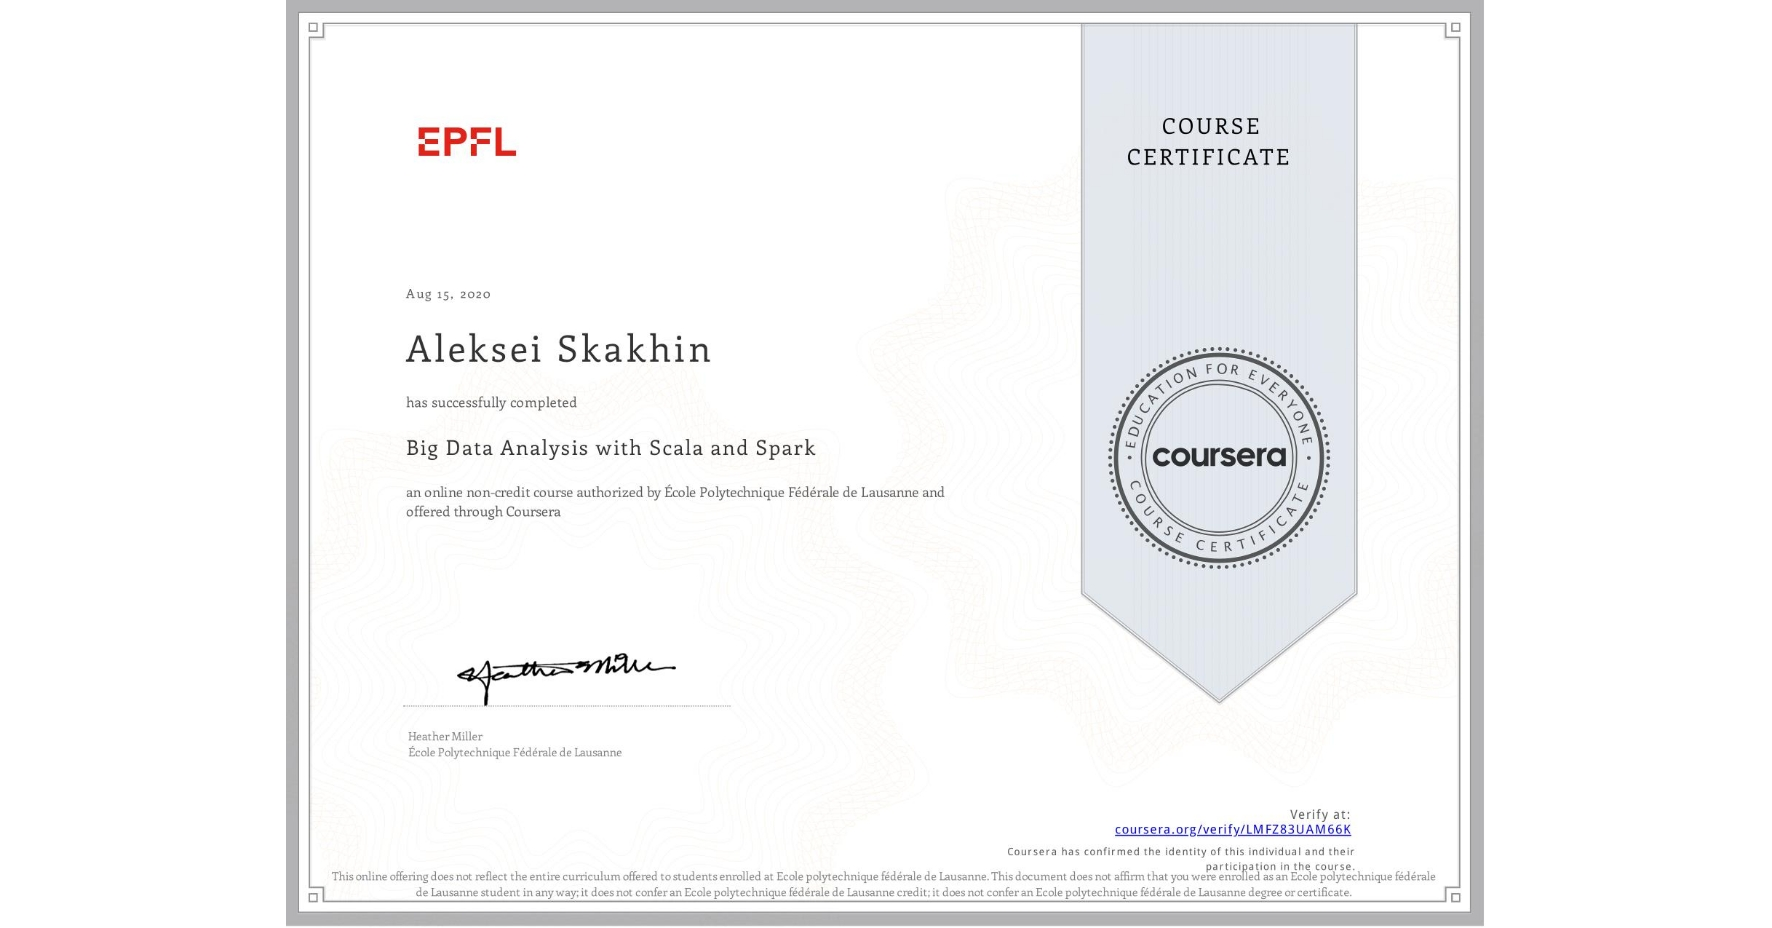 View certificate for Aleksei Skakhin, Big Data Analysis with Scala and Spark, an online non-credit course authorized by École Polytechnique Fédérale de Lausanne and offered through Coursera